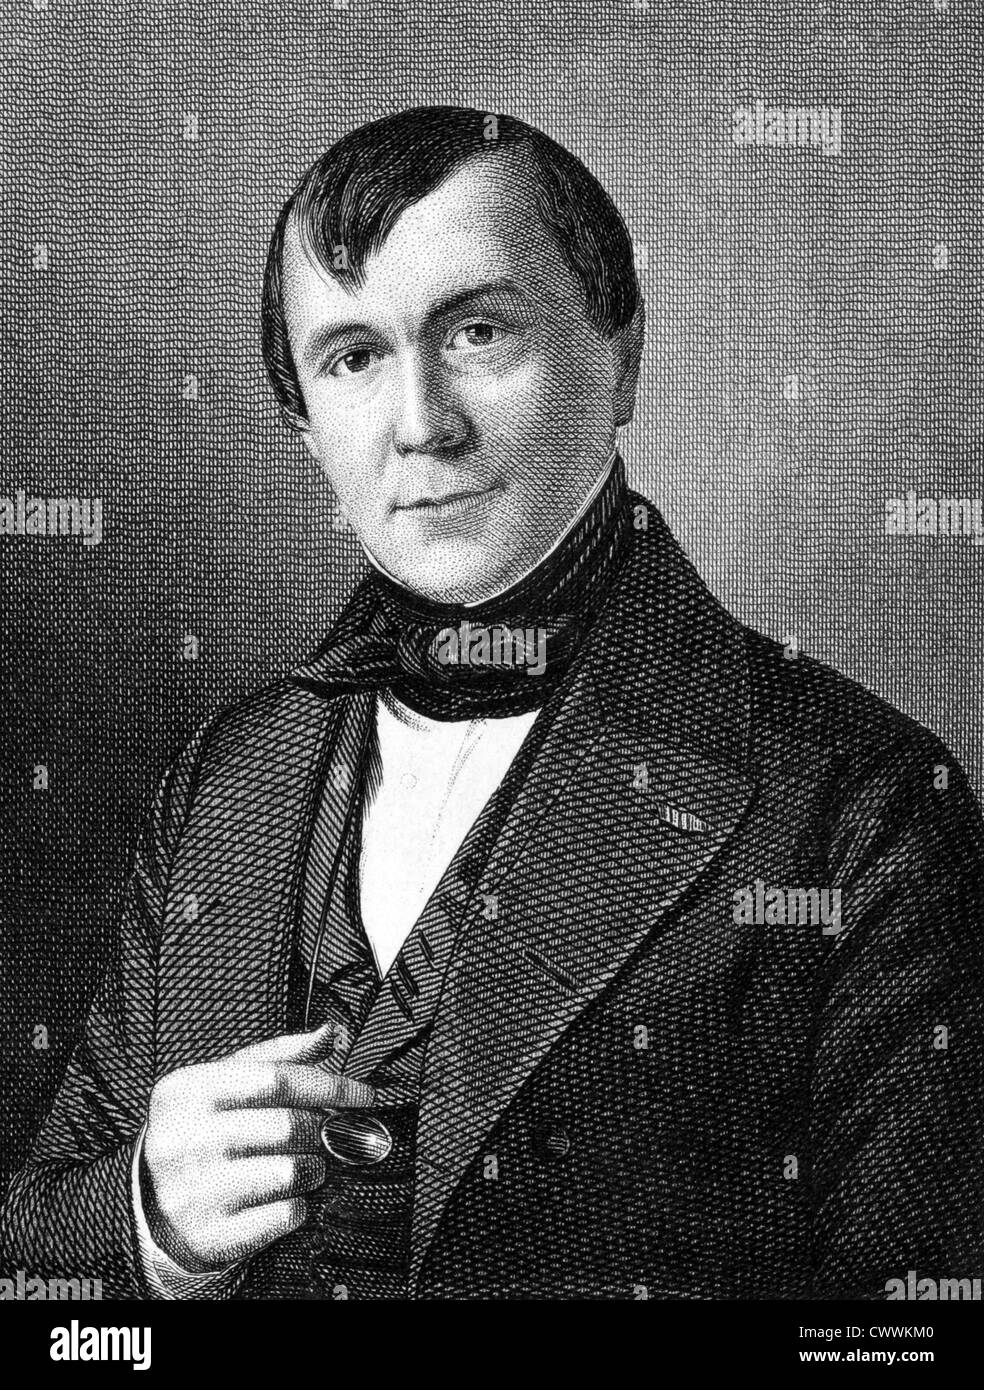 Emile de Girardin (1802-1881) on engraving from 1859. French journalist, publicist and politician. - Stock Image